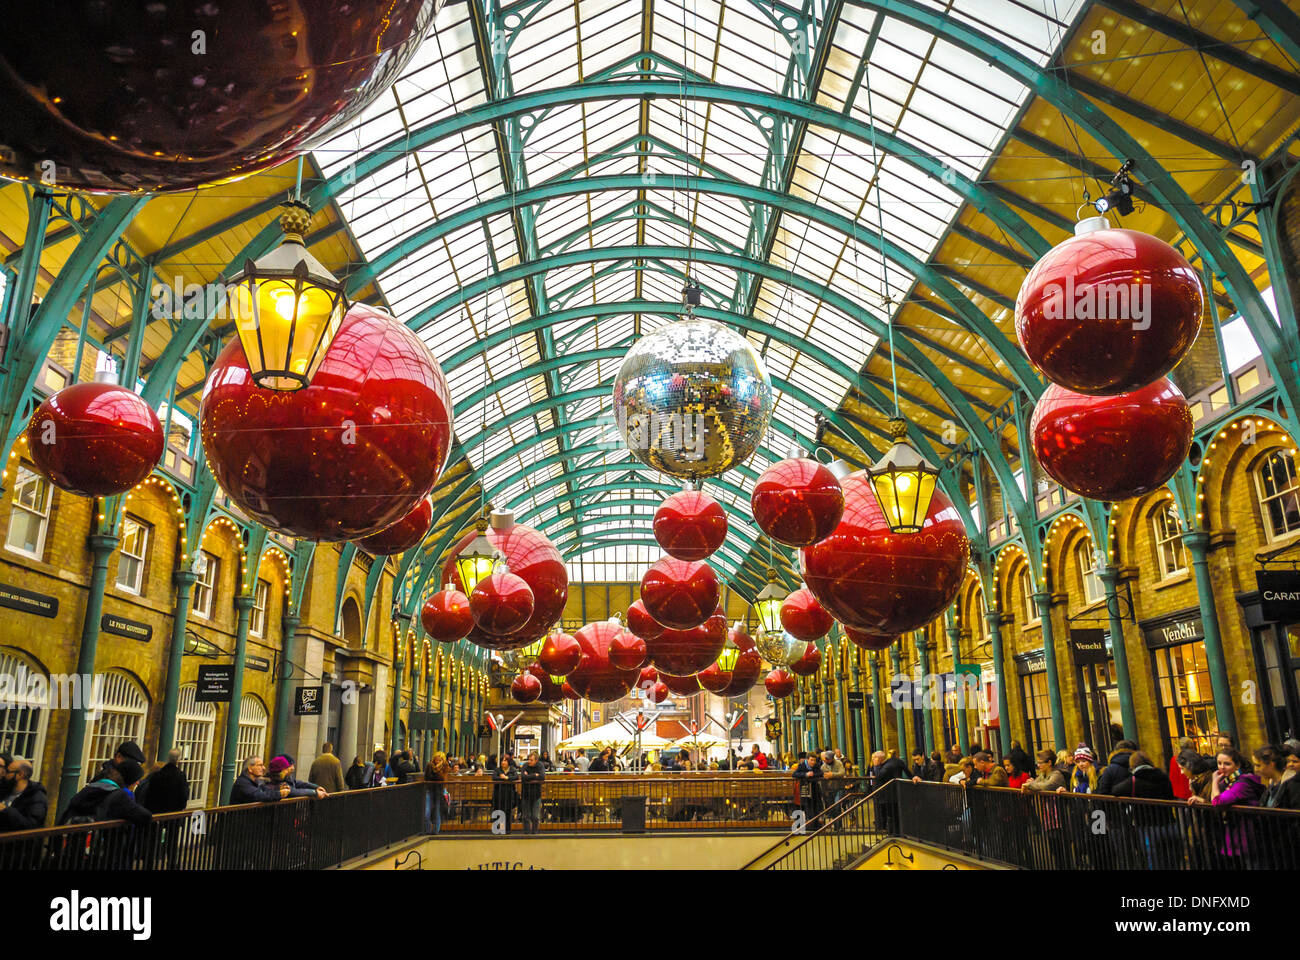 Scenic Christmas Decorations At Covent Garden London Uk Stock Photo  With Exciting Christmas Decorations At Covent Garden London Uk With Archaic Secret Garden Restaurant Ashford Also Tall Metal Garden Gates In Addition Garden Glider And Bracknell Garden Centre As Well As Colour Changing Solar Garden Lights Uk Additionally Dan Pearson Garden Designer From Alamycom With   Exciting Christmas Decorations At Covent Garden London Uk Stock Photo  With Archaic Christmas Decorations At Covent Garden London Uk And Scenic Secret Garden Restaurant Ashford Also Tall Metal Garden Gates In Addition Garden Glider From Alamycom